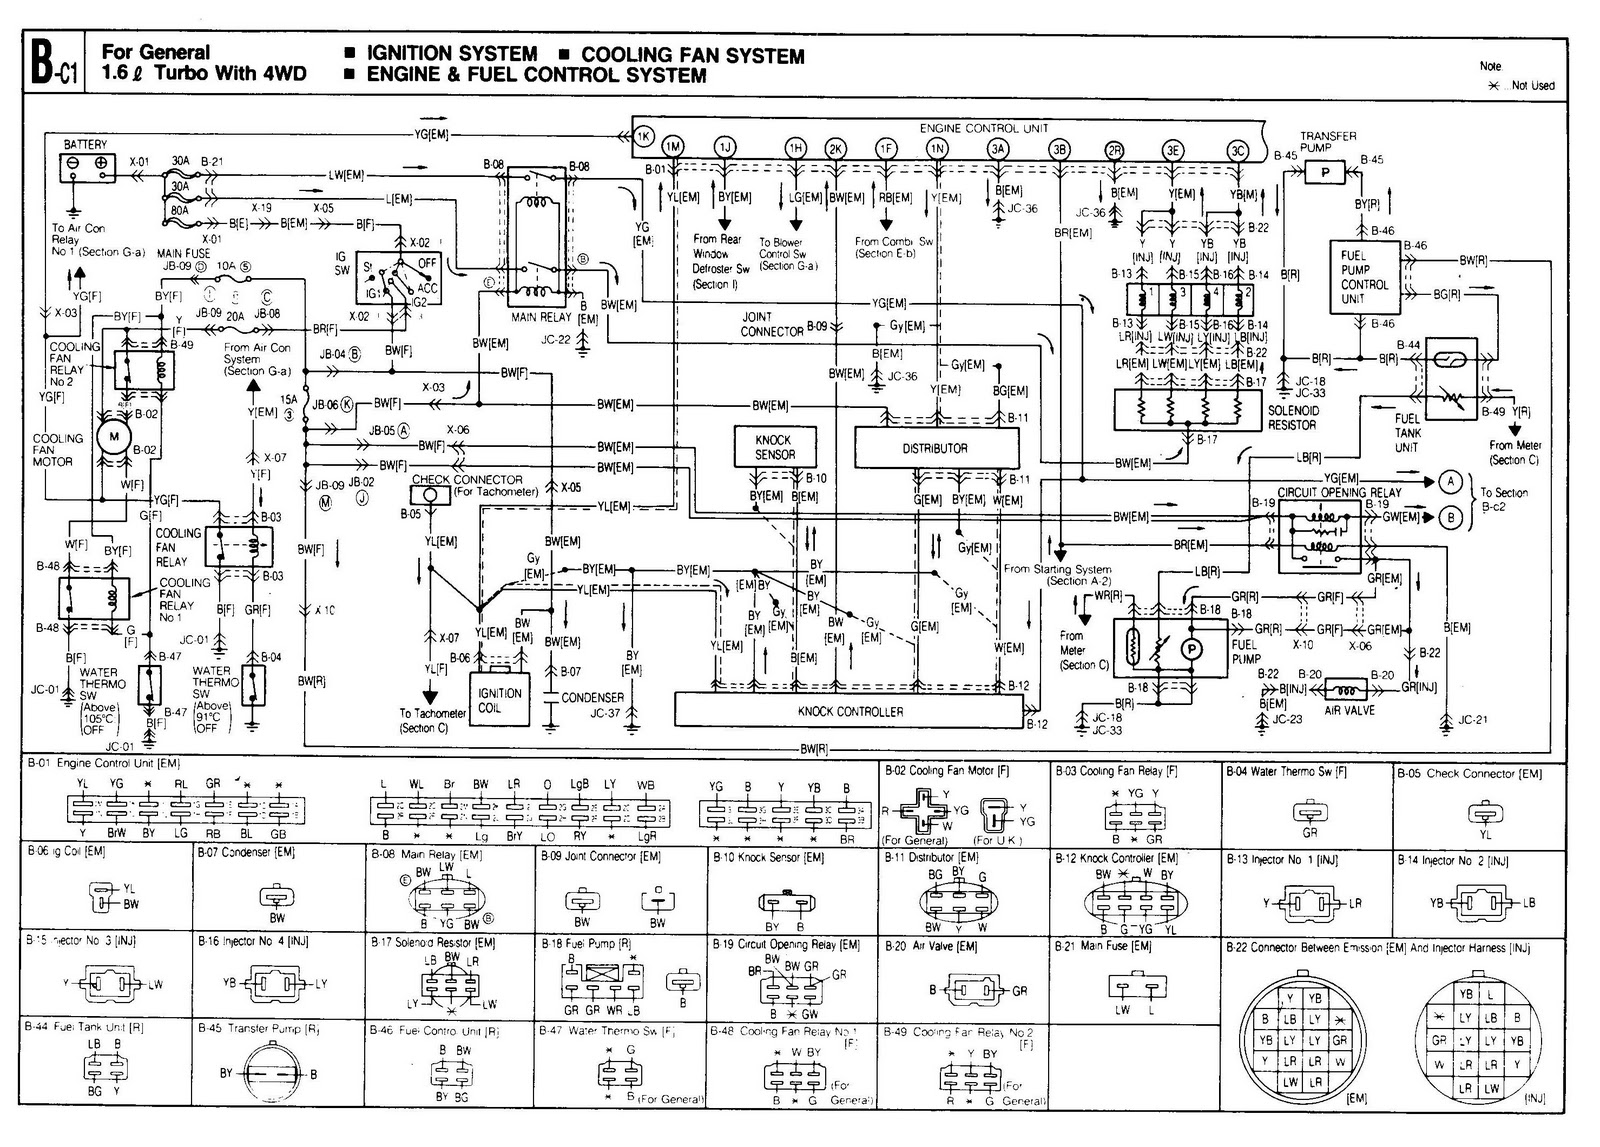 99 Miata Fuse Diagram Another Blog About Wiring Mazda Understanding Service Manual Guide